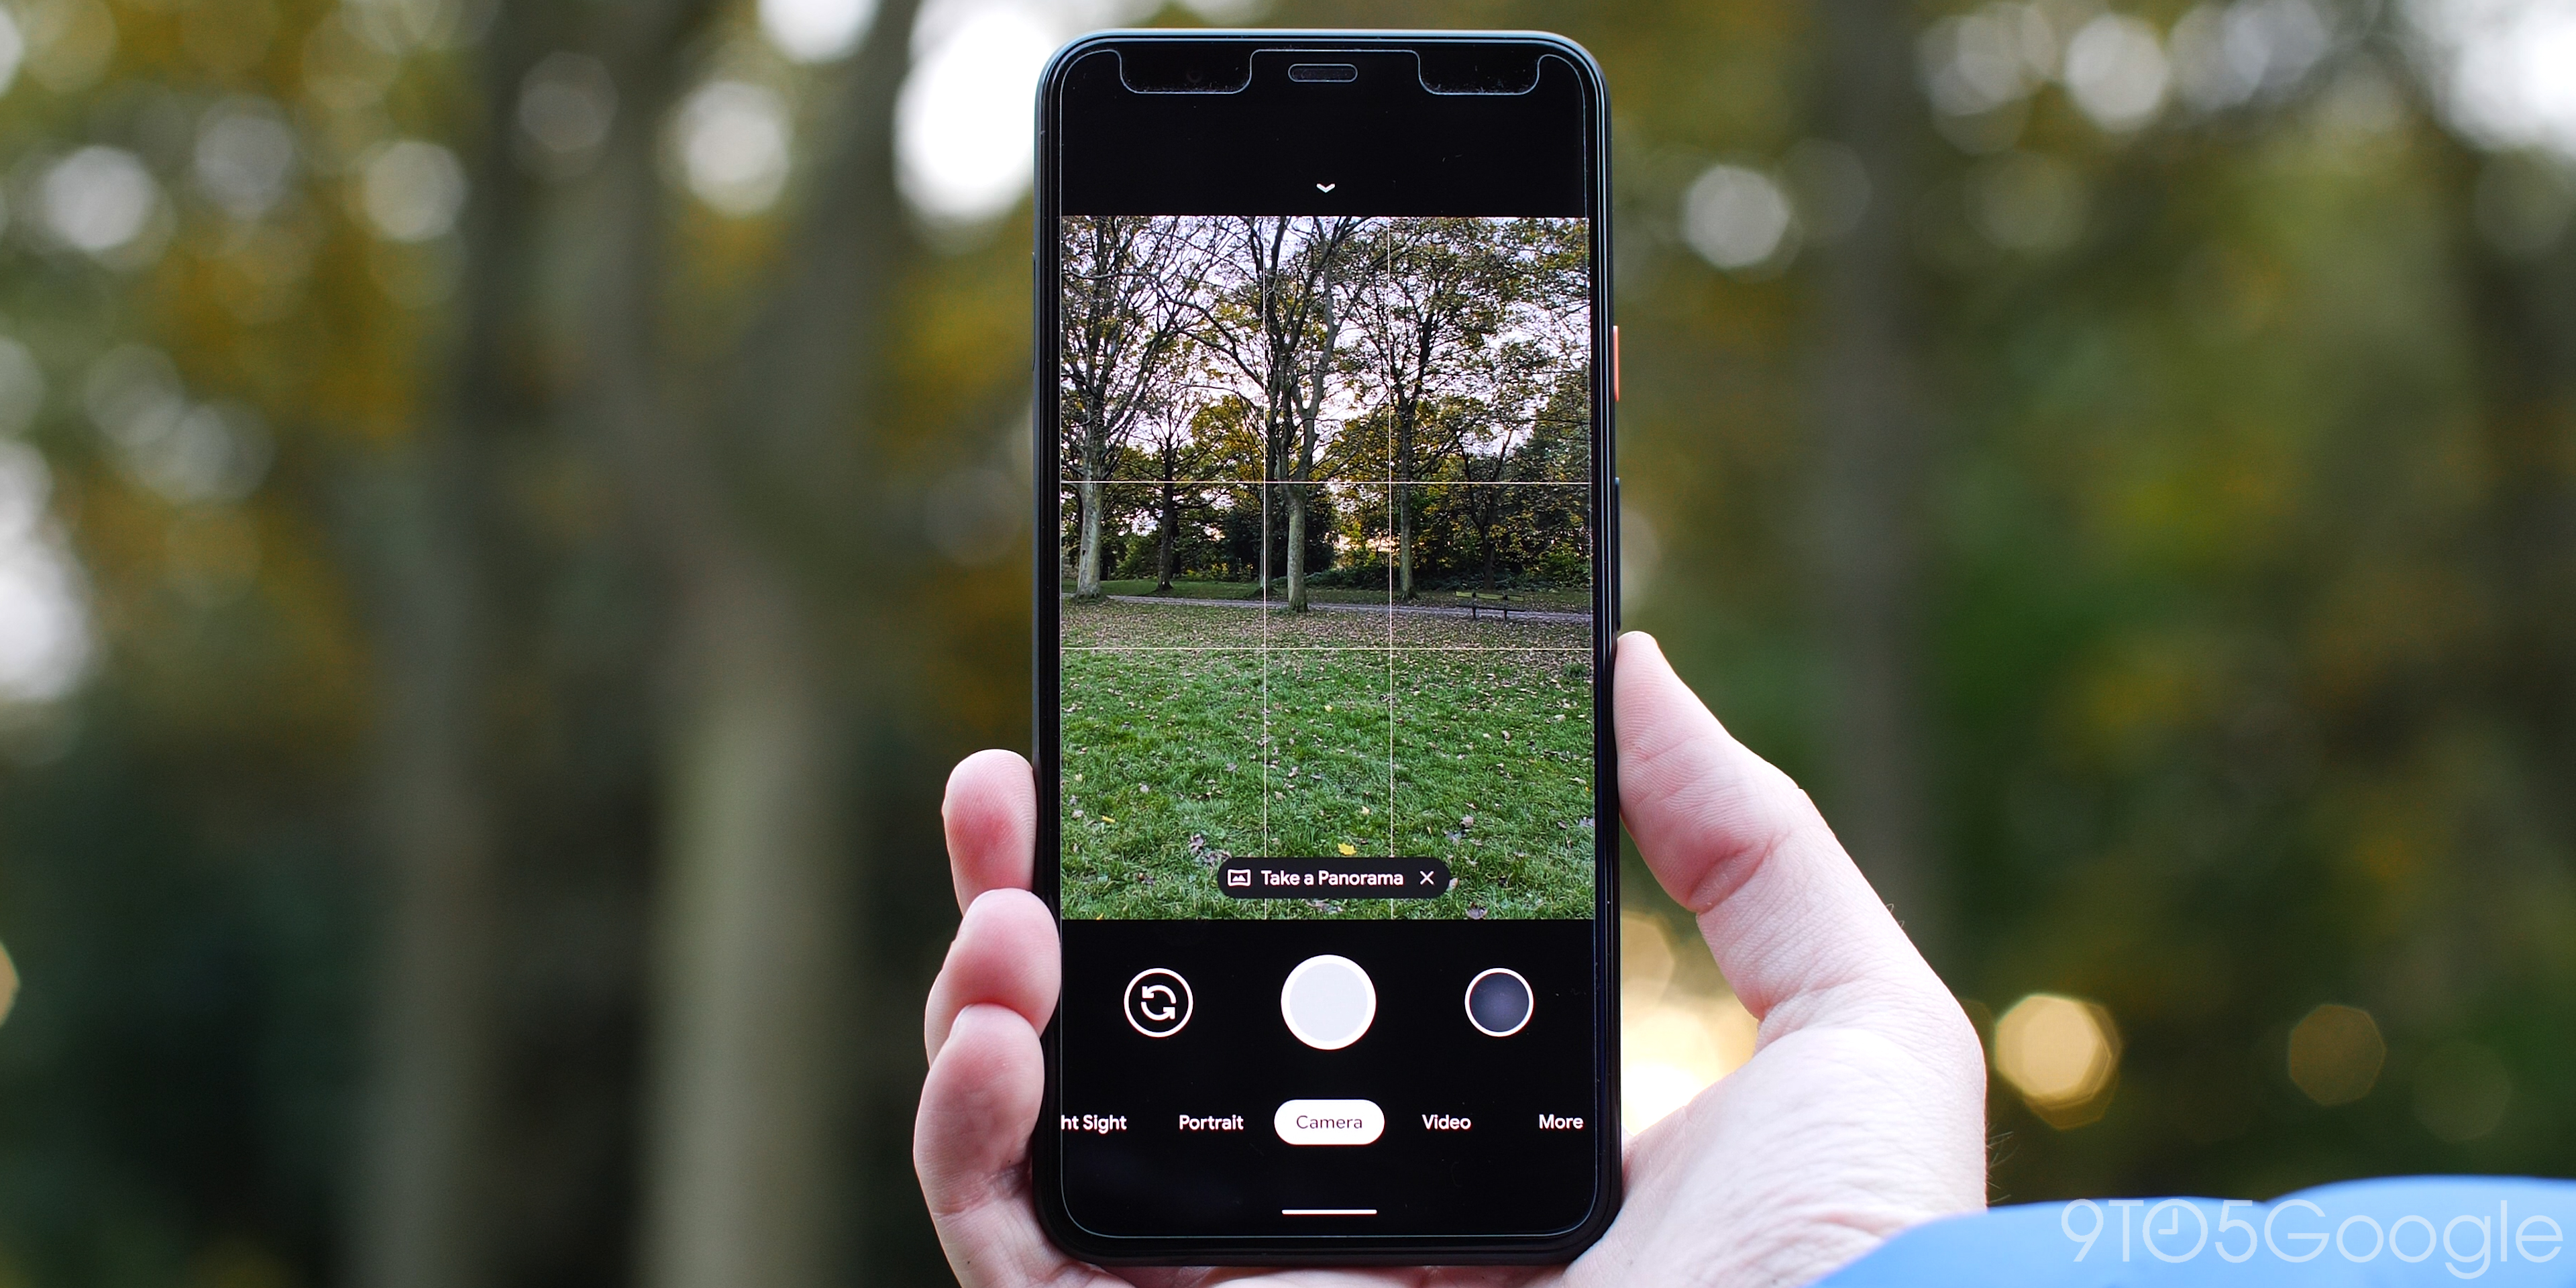 pixel 4 camera interface